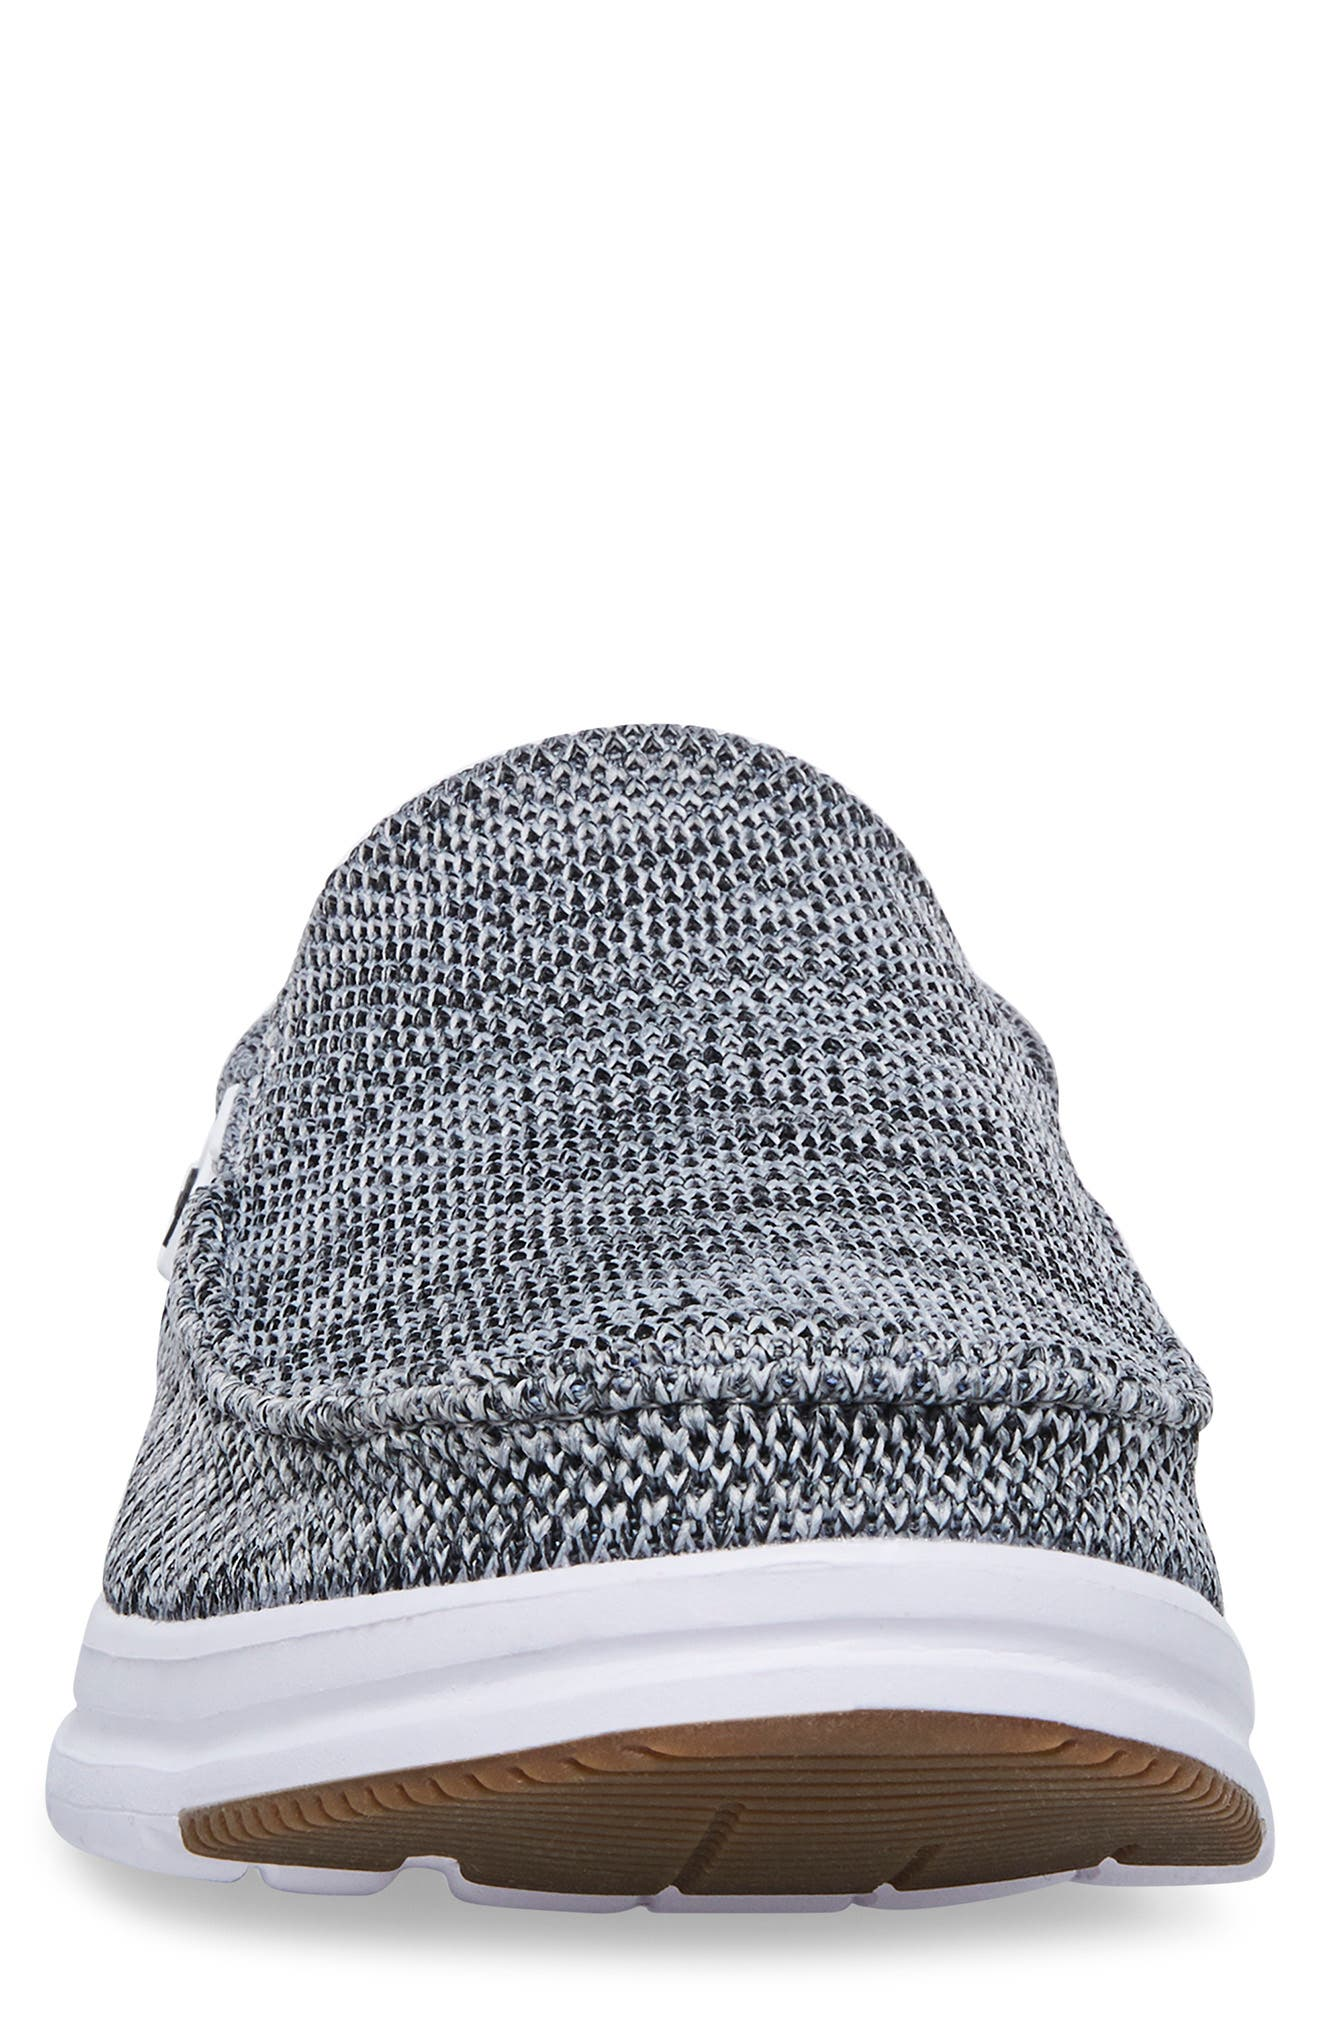 Steve Madden Low tops KNIT SLIP-ON SNEAKER